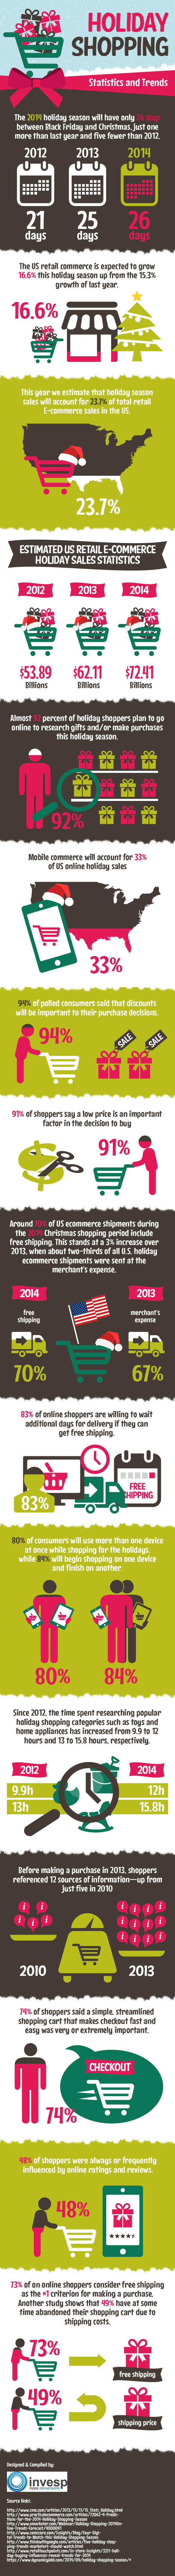 holiday shipping 2014 trends